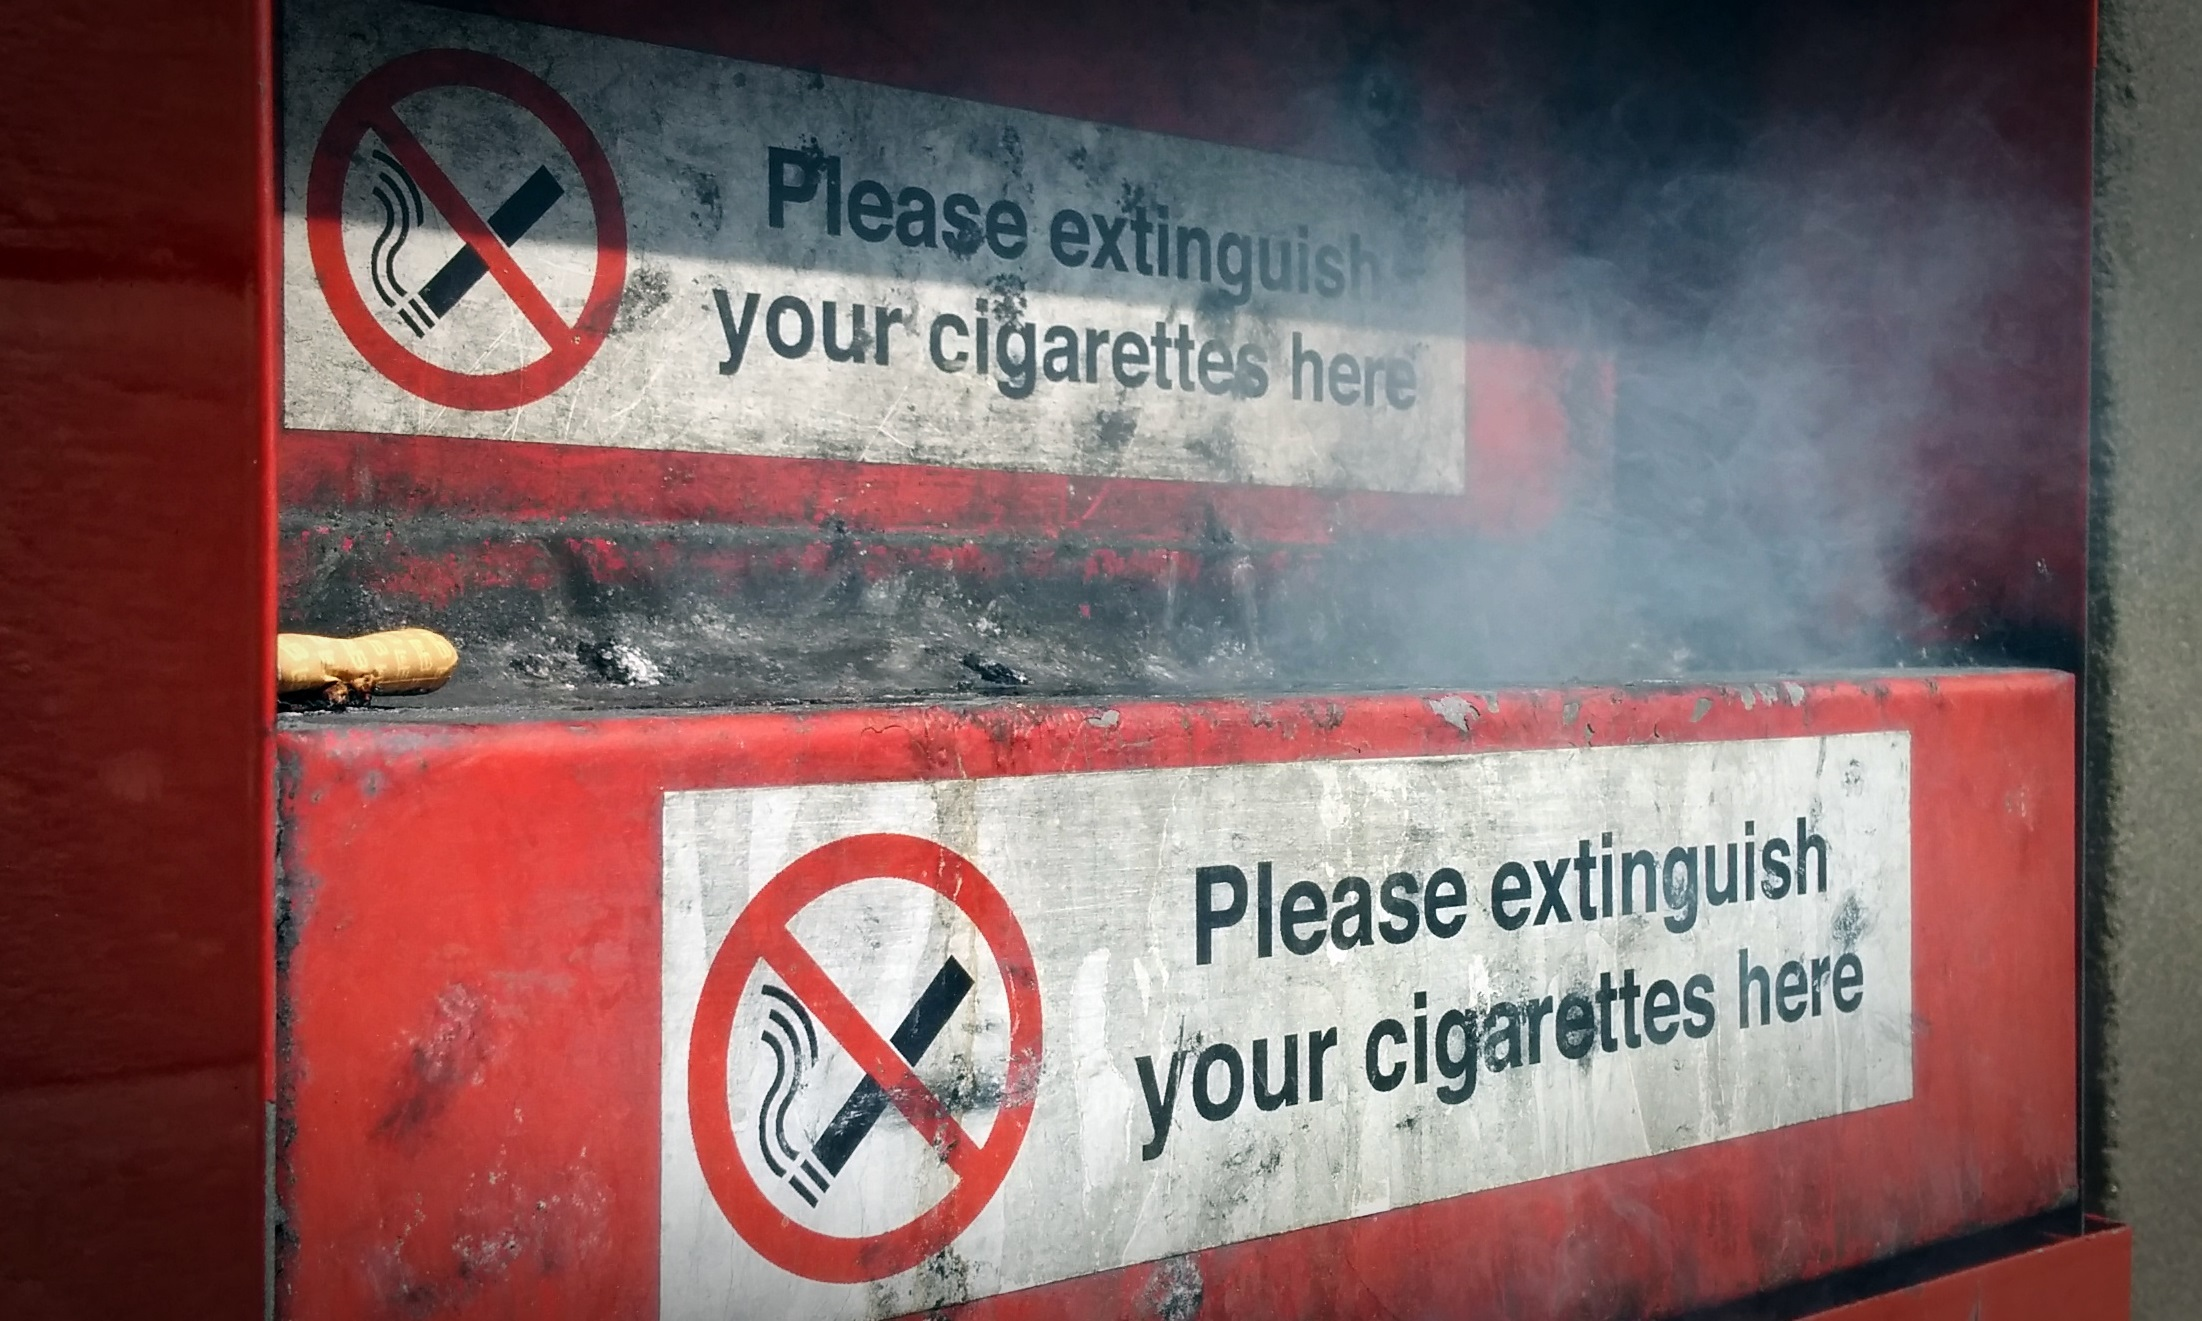 Smokers in the area have been asked to look out for people selling cheap cigarettes.